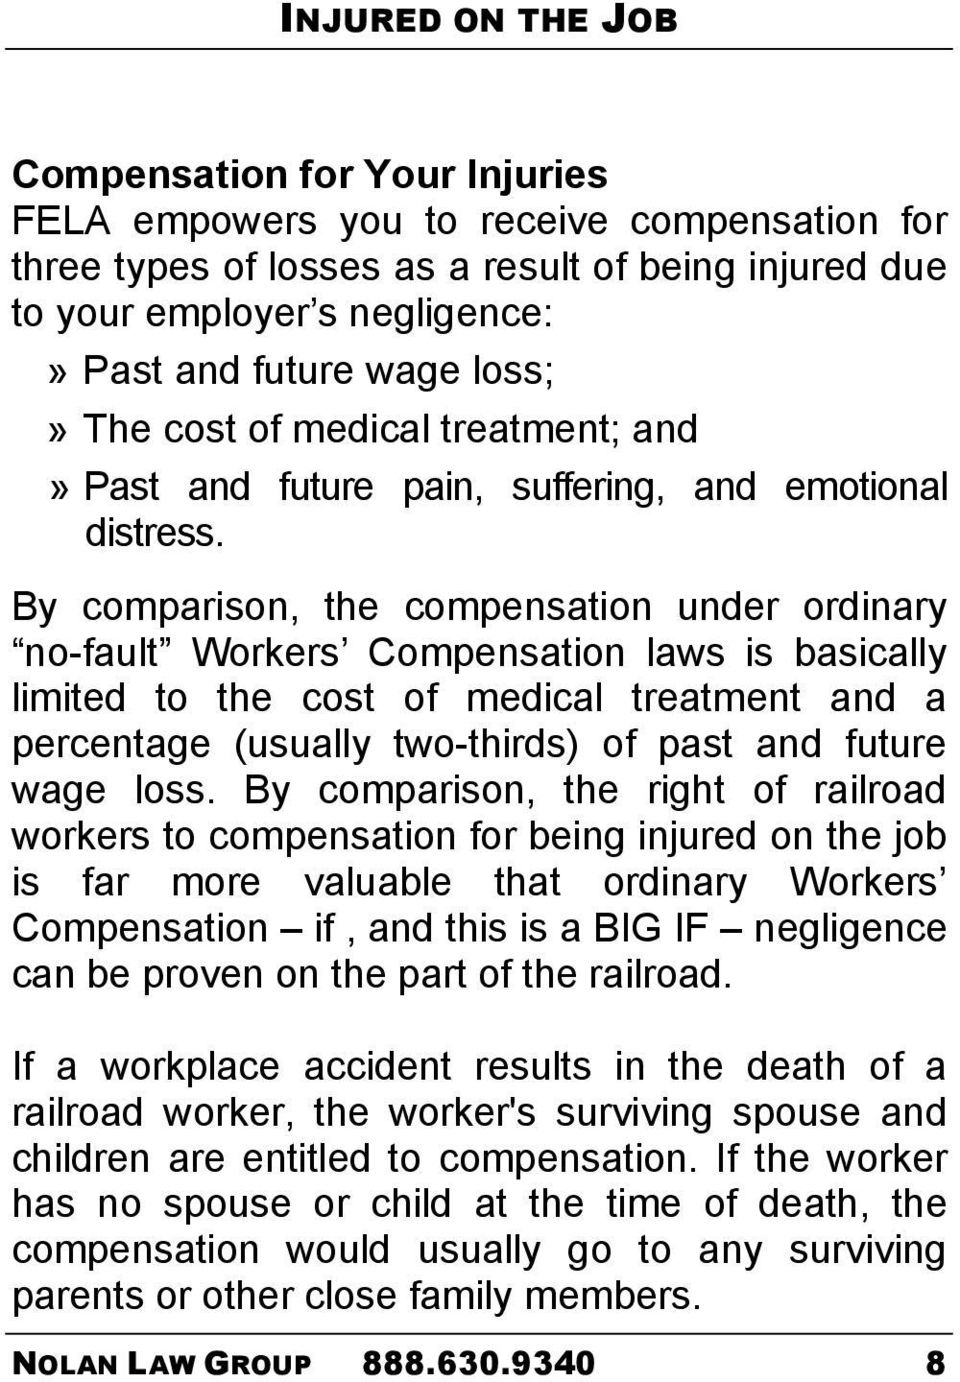 By comparison, the compensation under ordinary no-fault Workers Compensation laws is basically limited to the cost of medical treatment and a percentage (usually two-thirds) of past and future wage